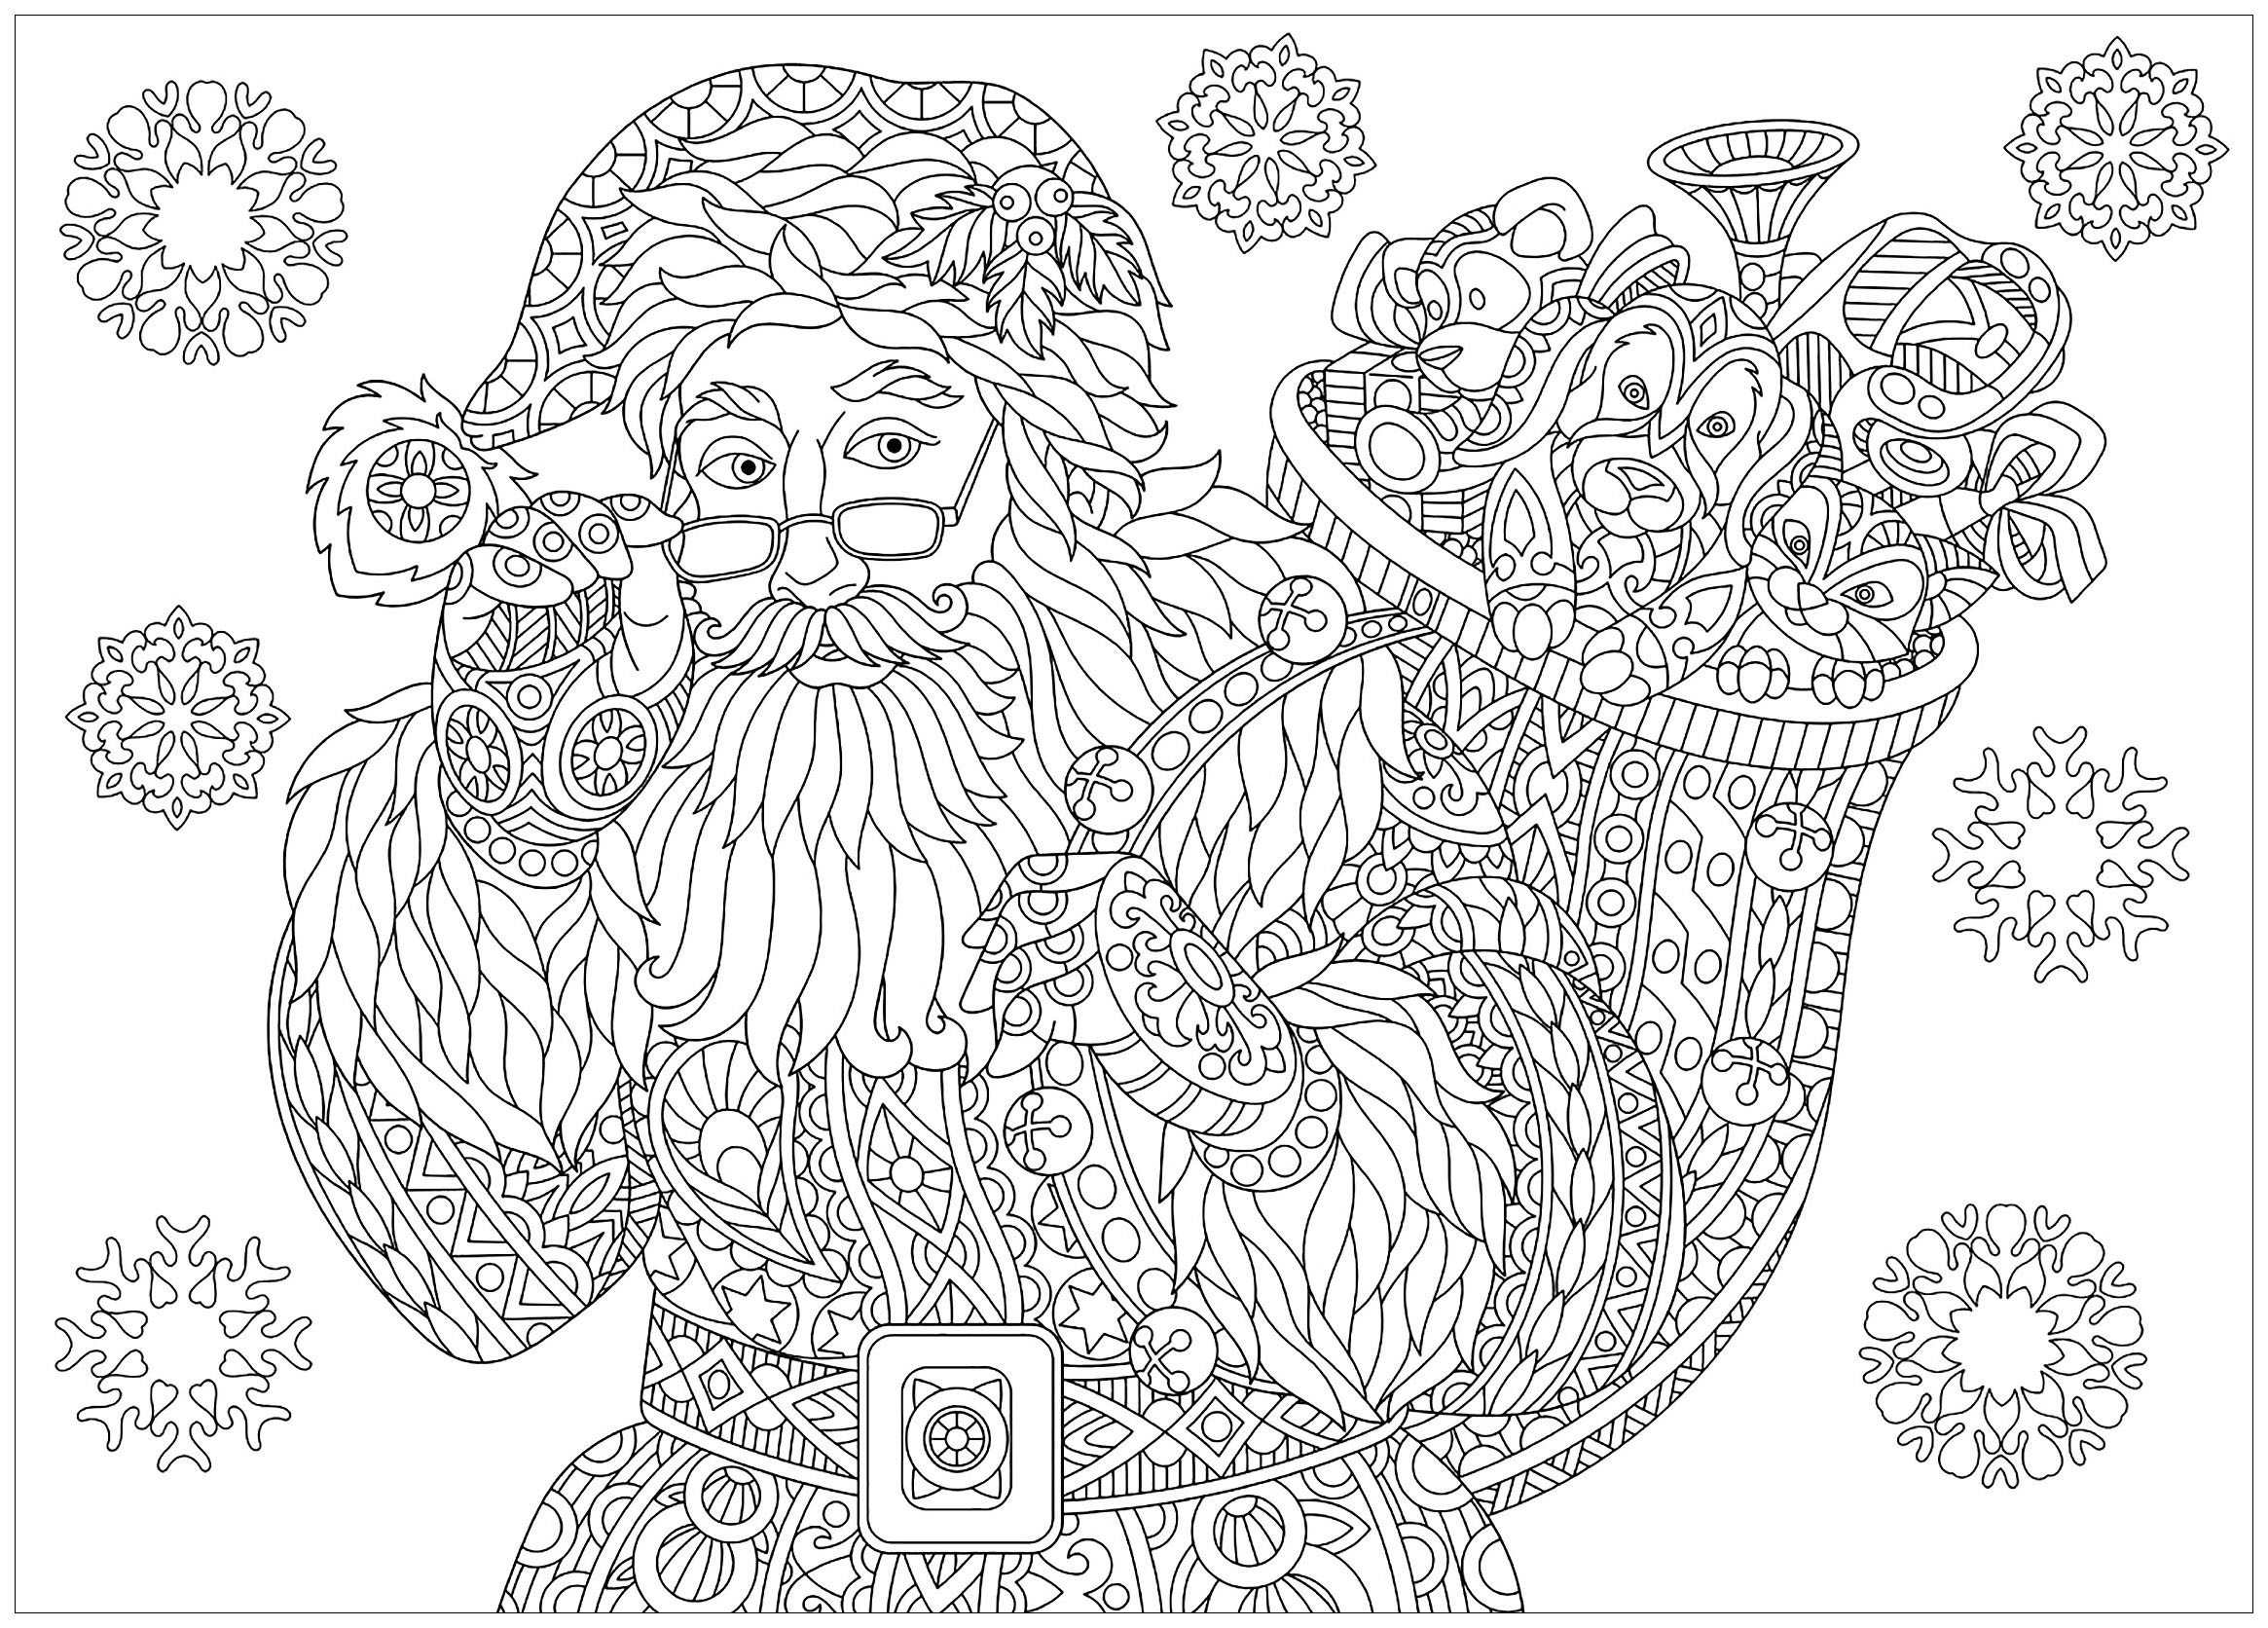 coloring page of santa claus with full bag of holiday gifts